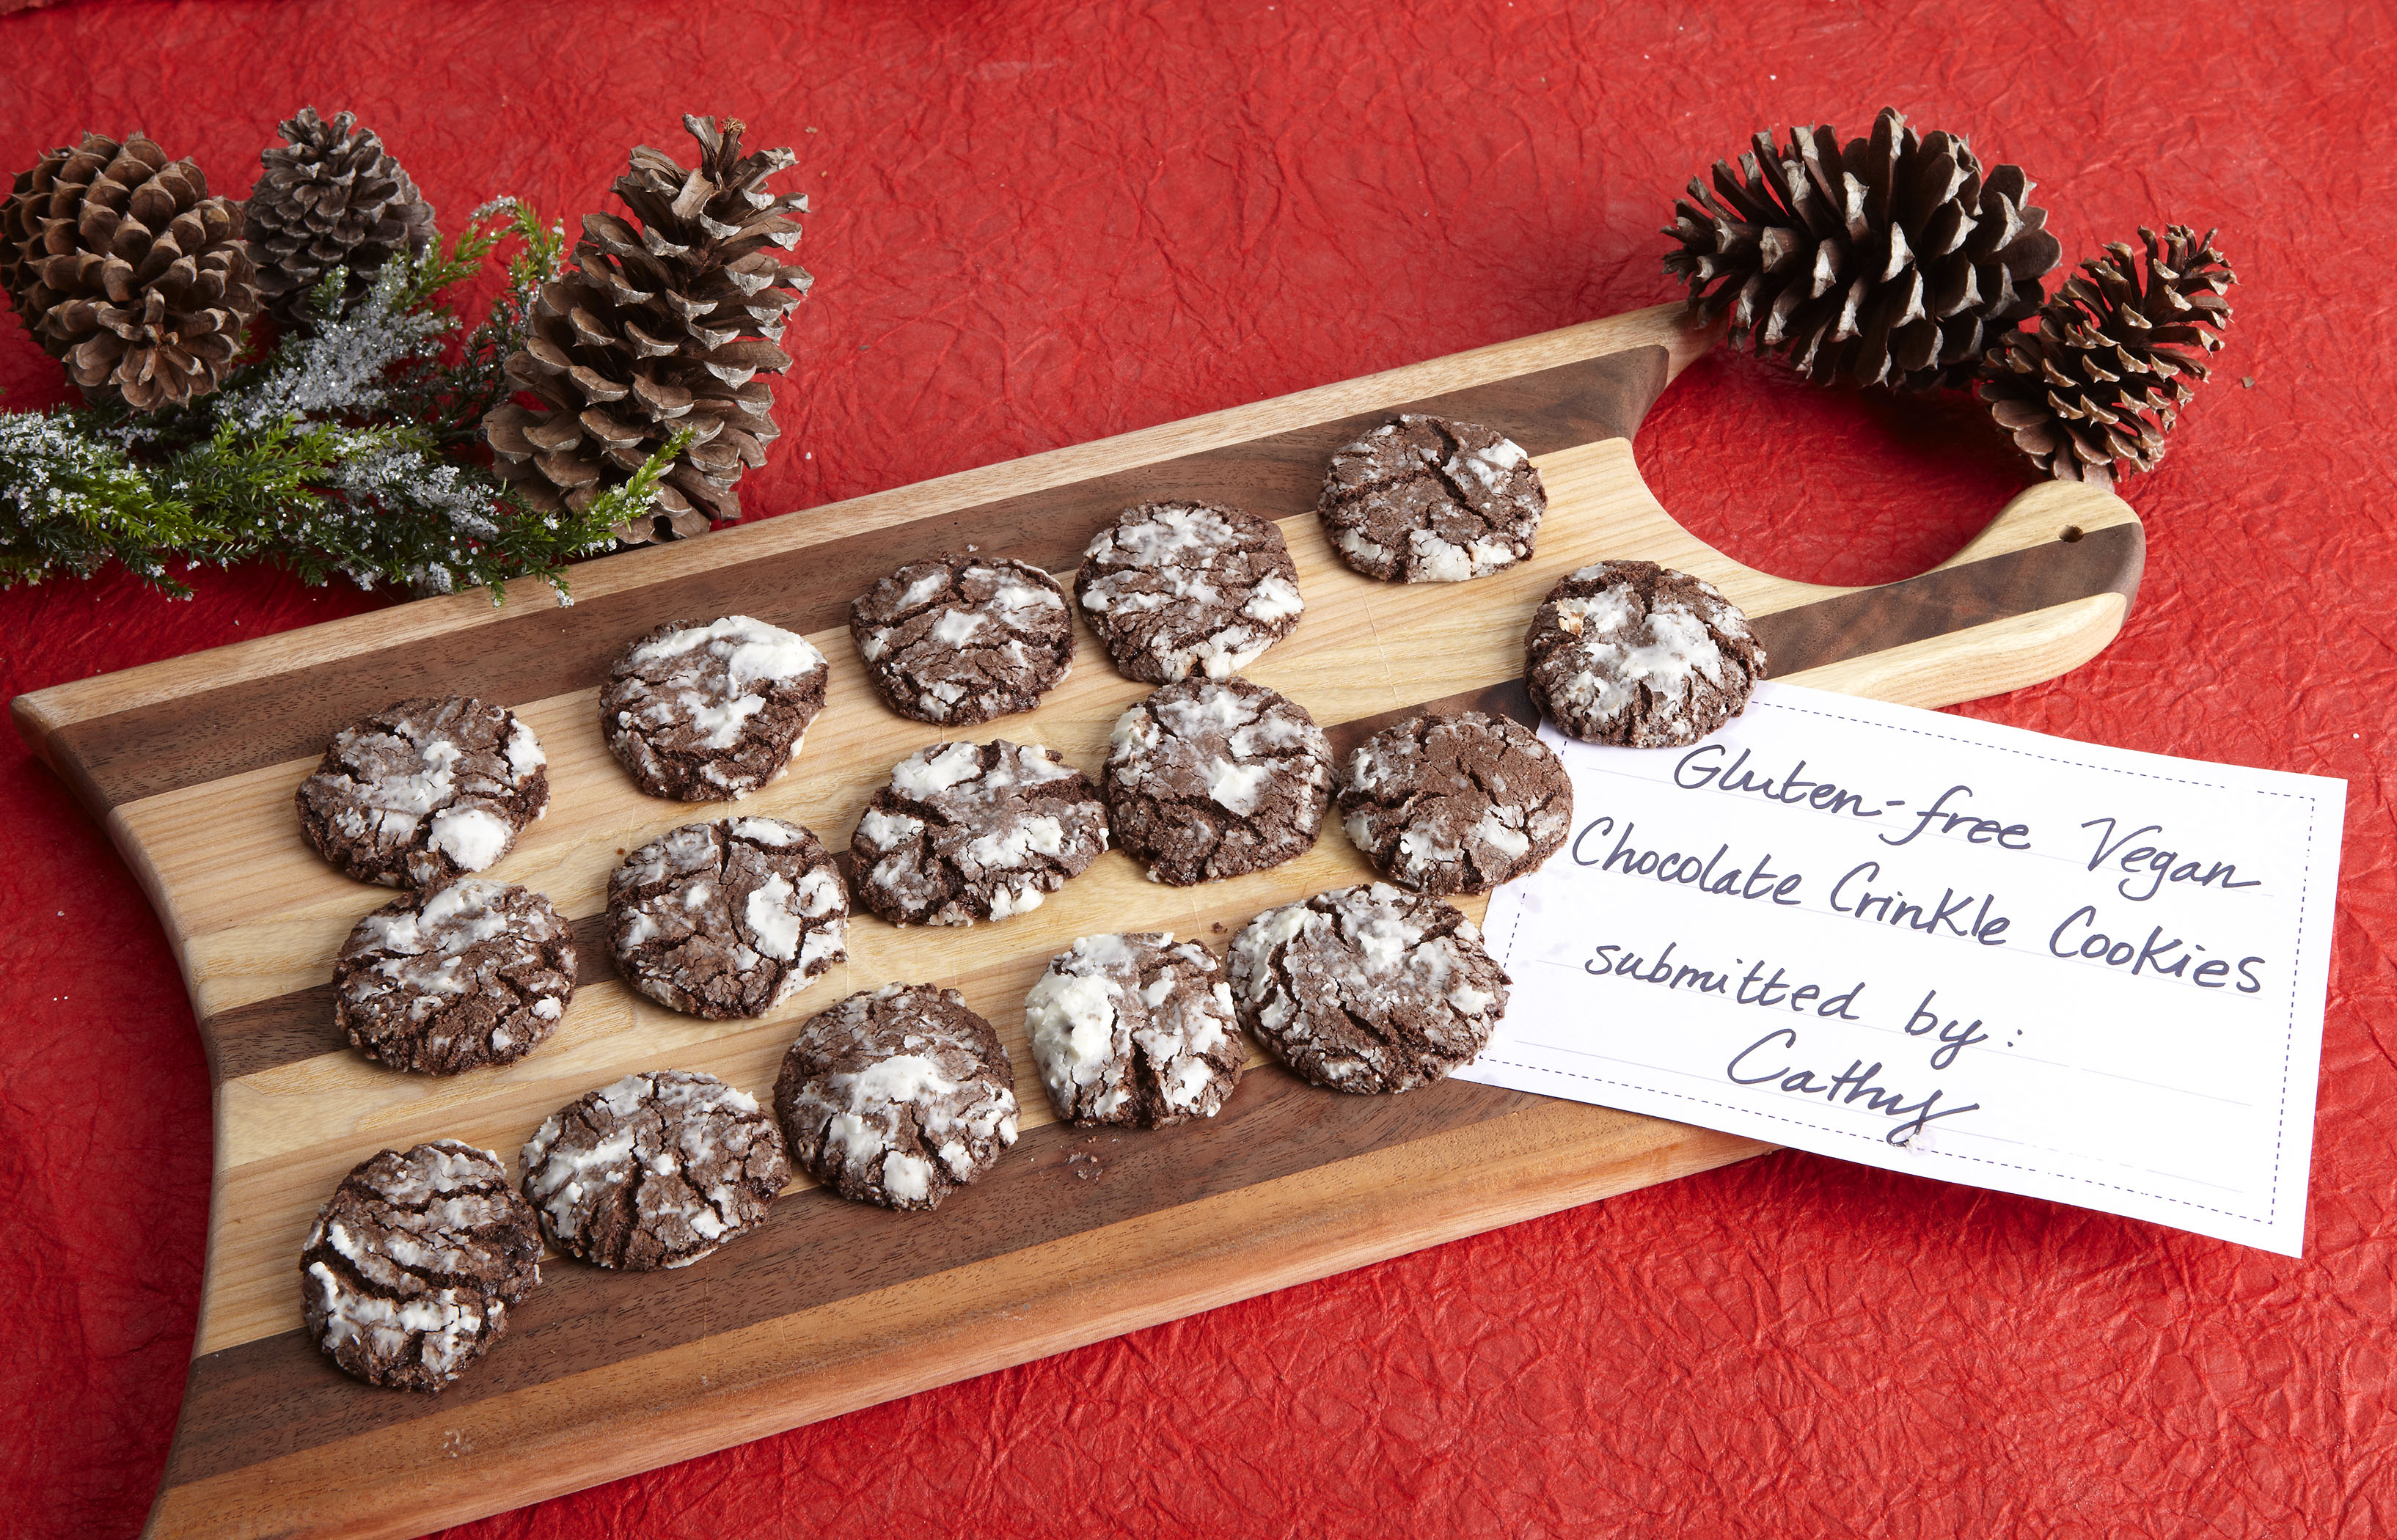 Gluten Free Vegan Chocolate Crinkle Cookies